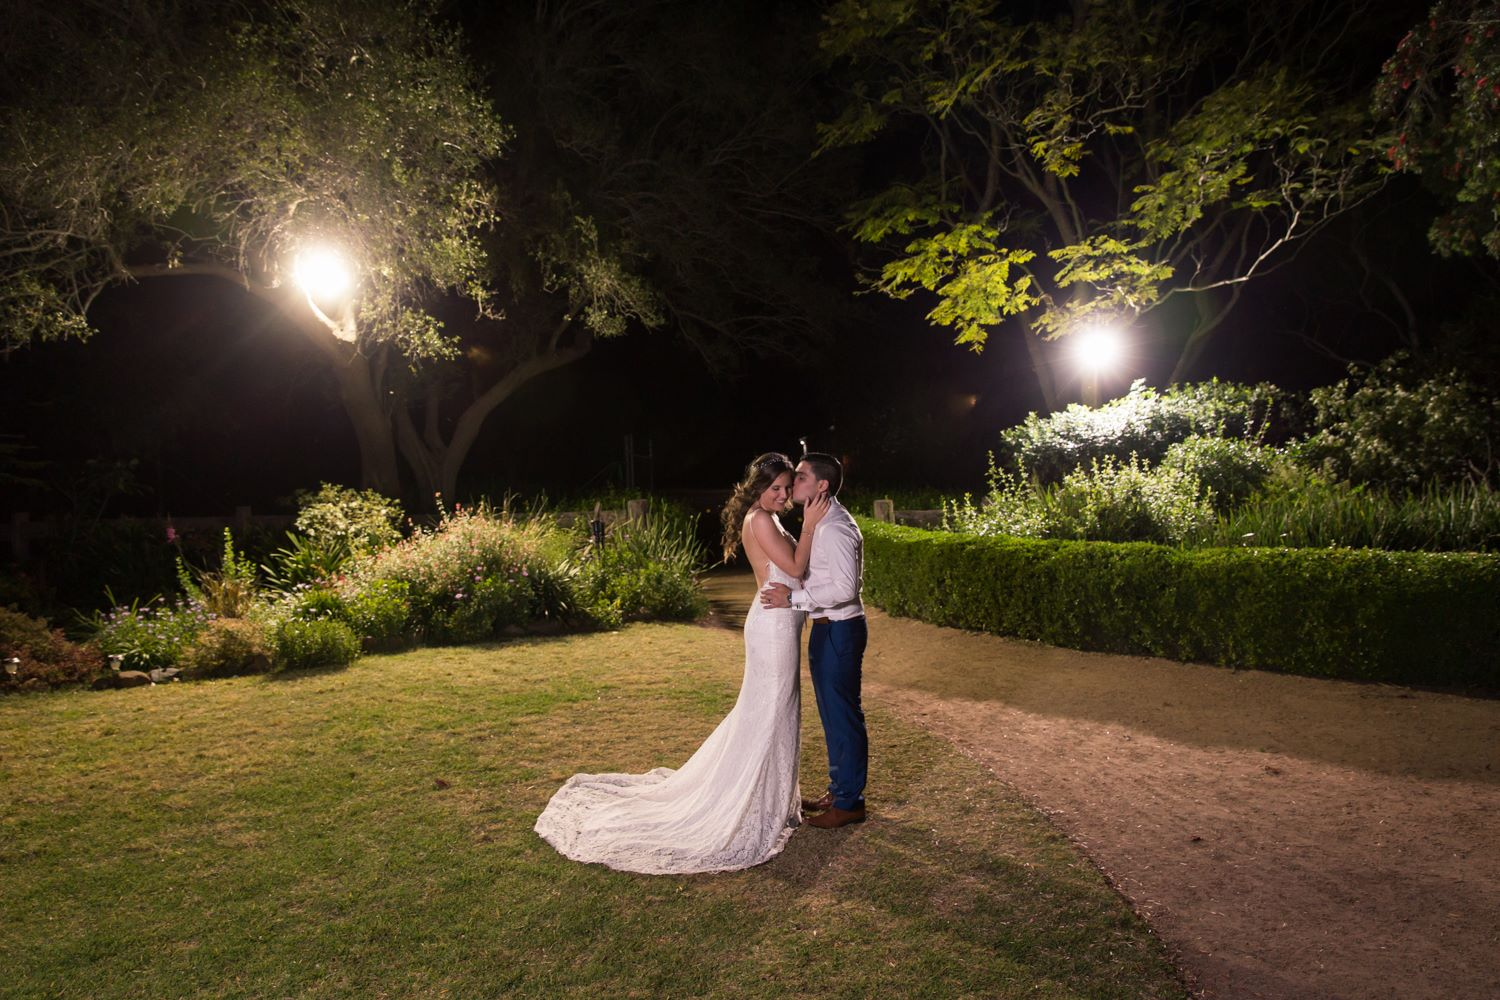 Wedding Photographer Brisbane  Packages from 990